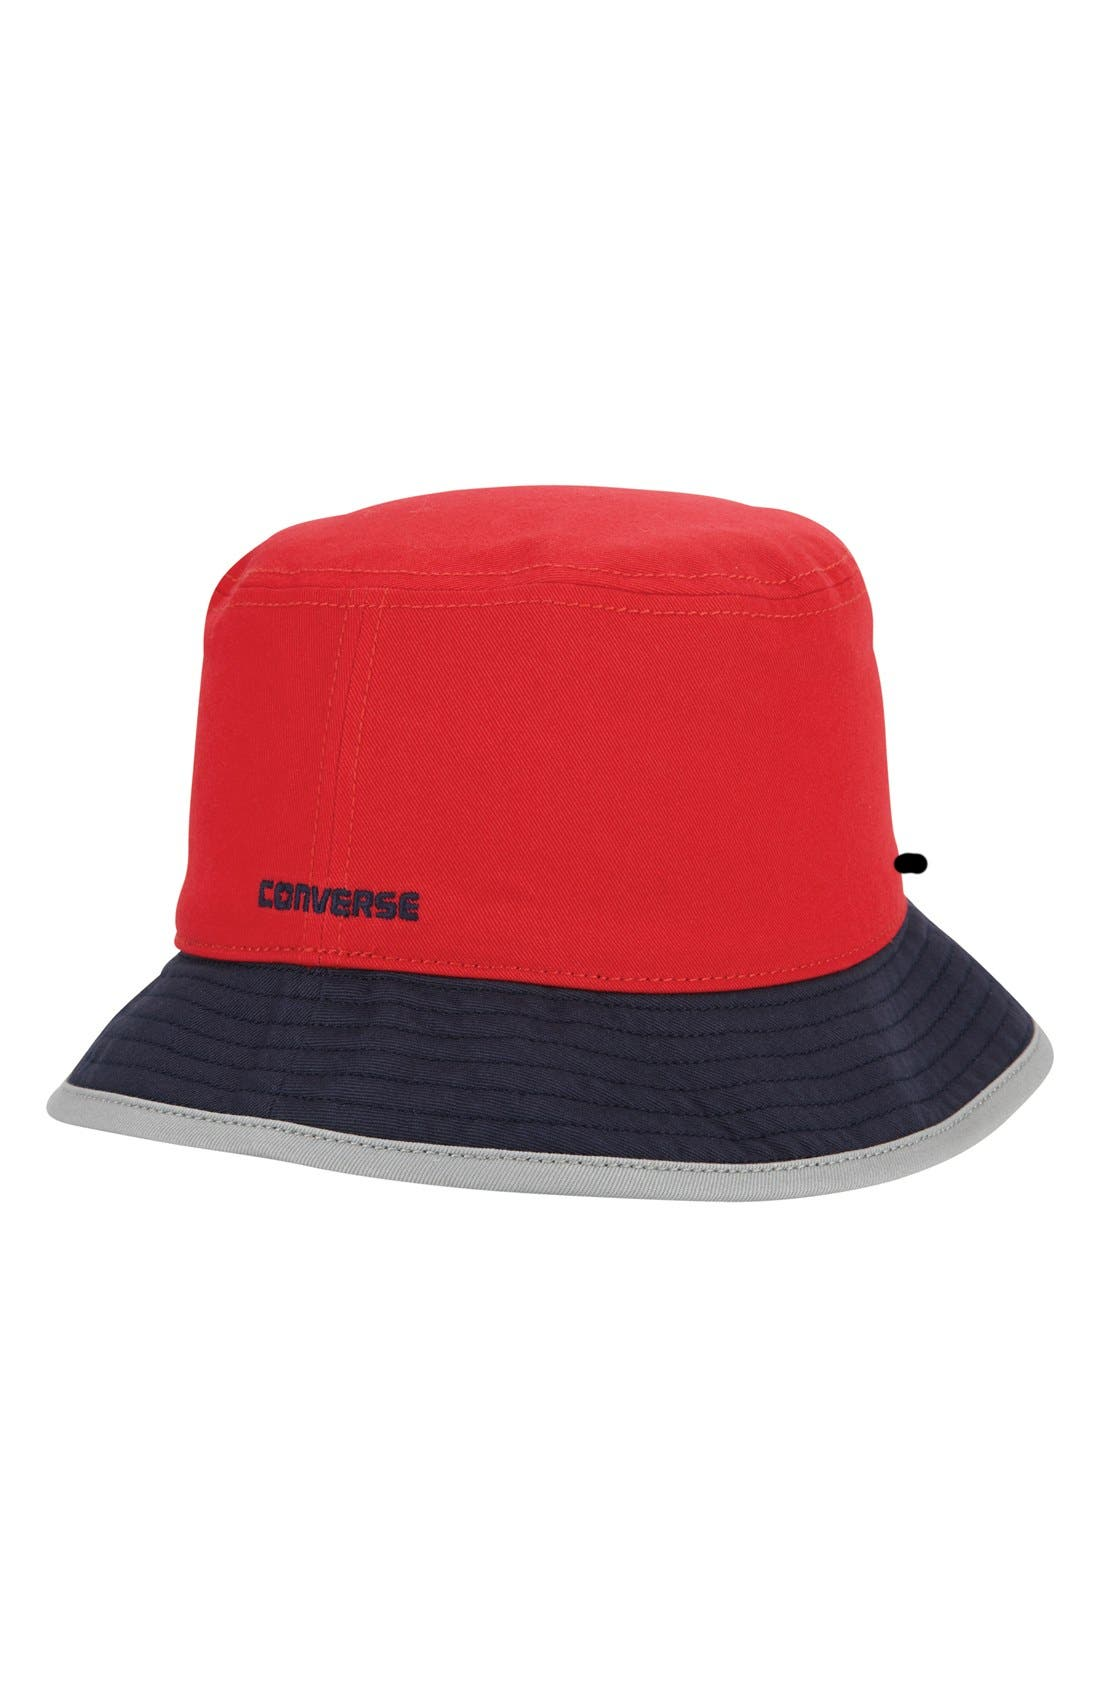 Alternate Image 1 Selected - Converse Reversible Bucket Hat